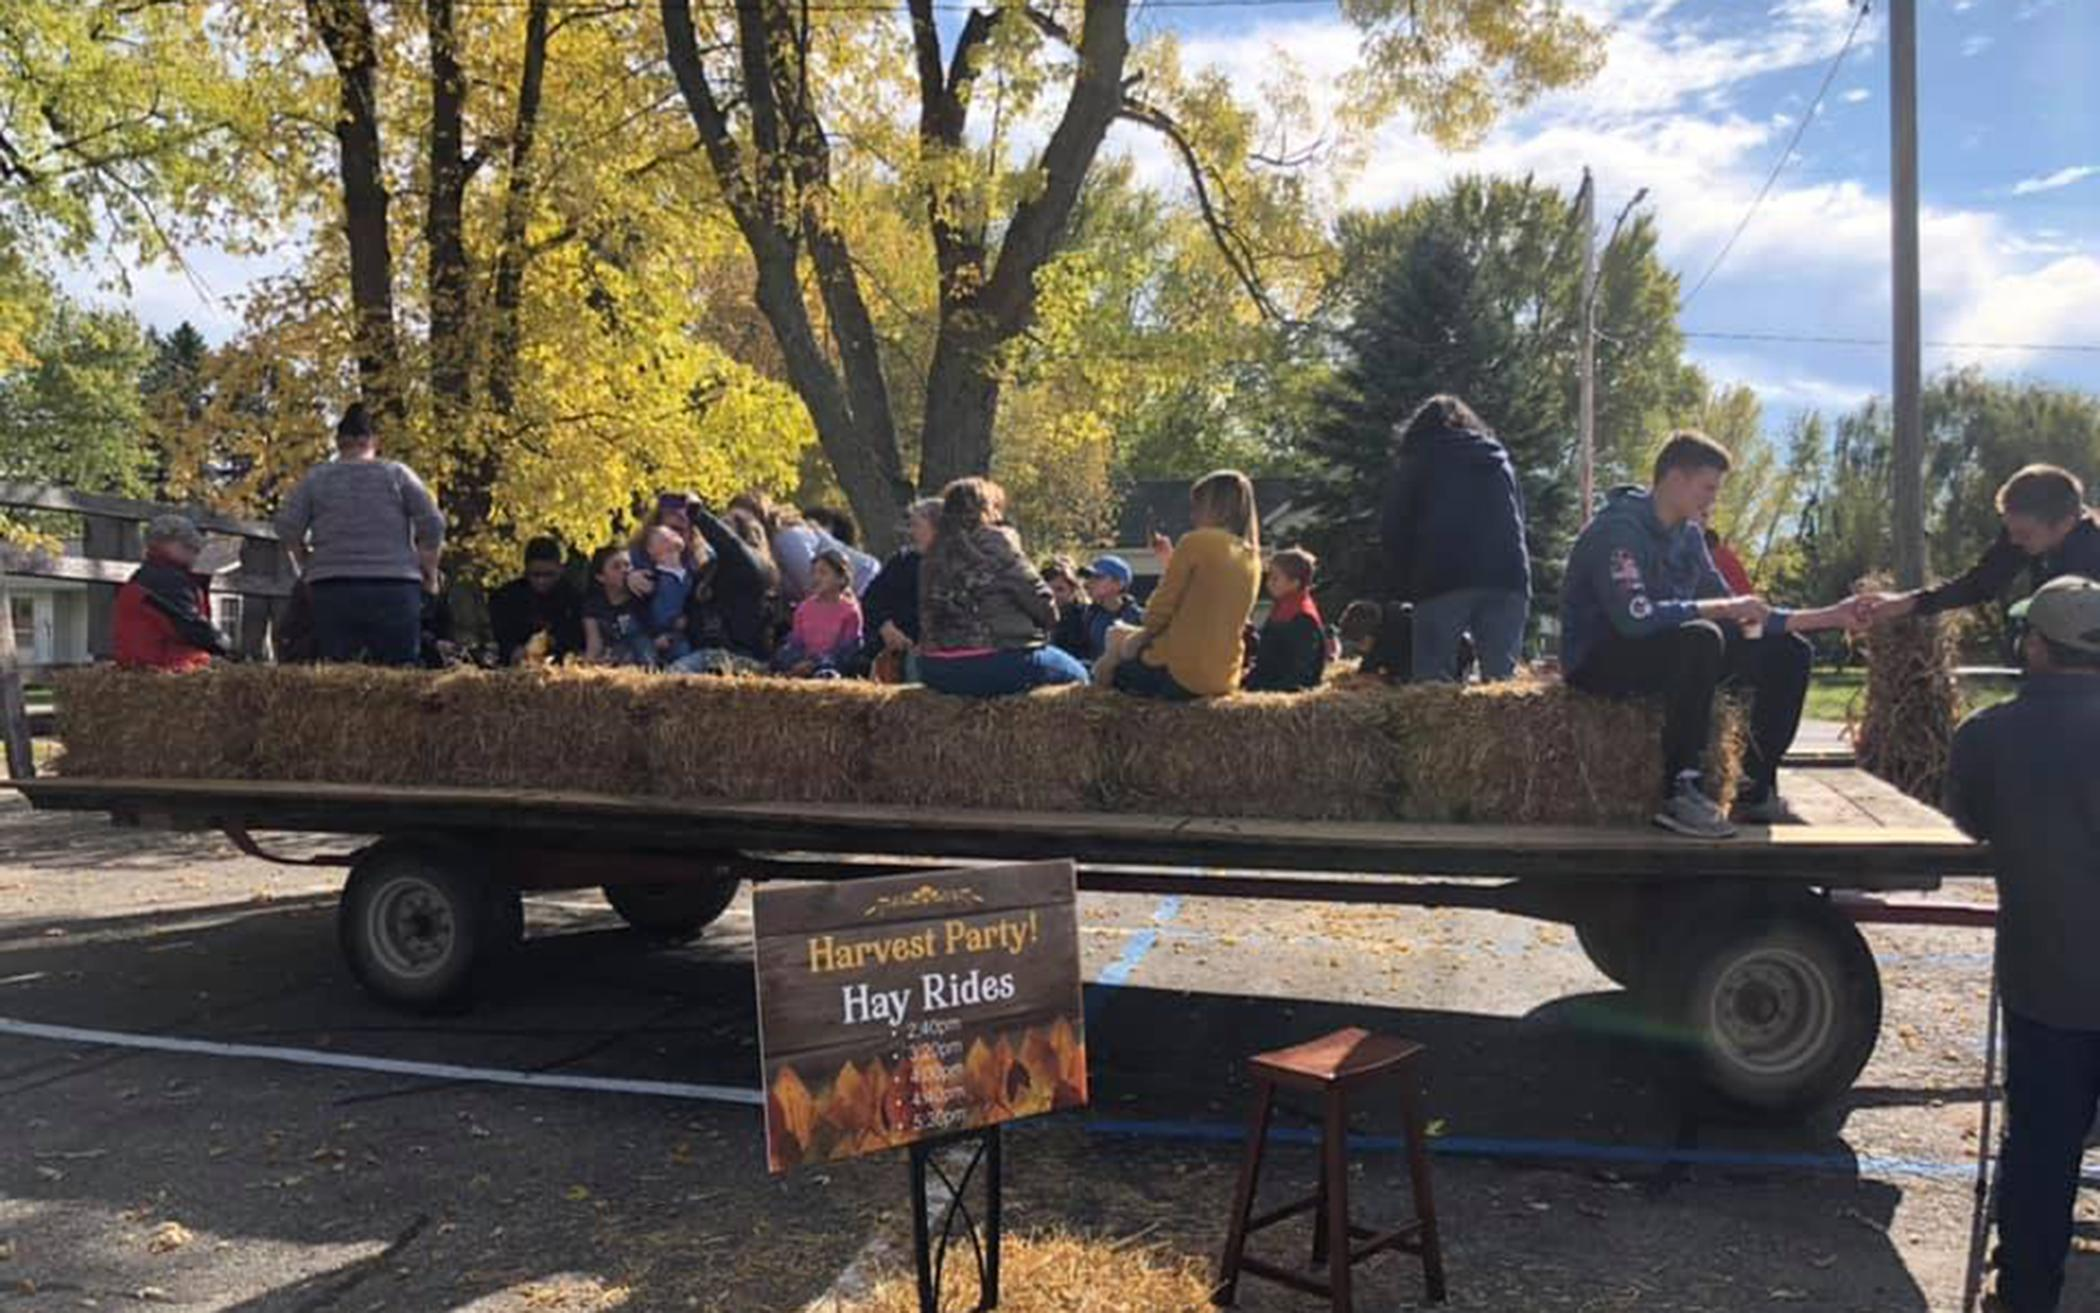 Harvest Party Welcomes Neighbors, Shares Gospel